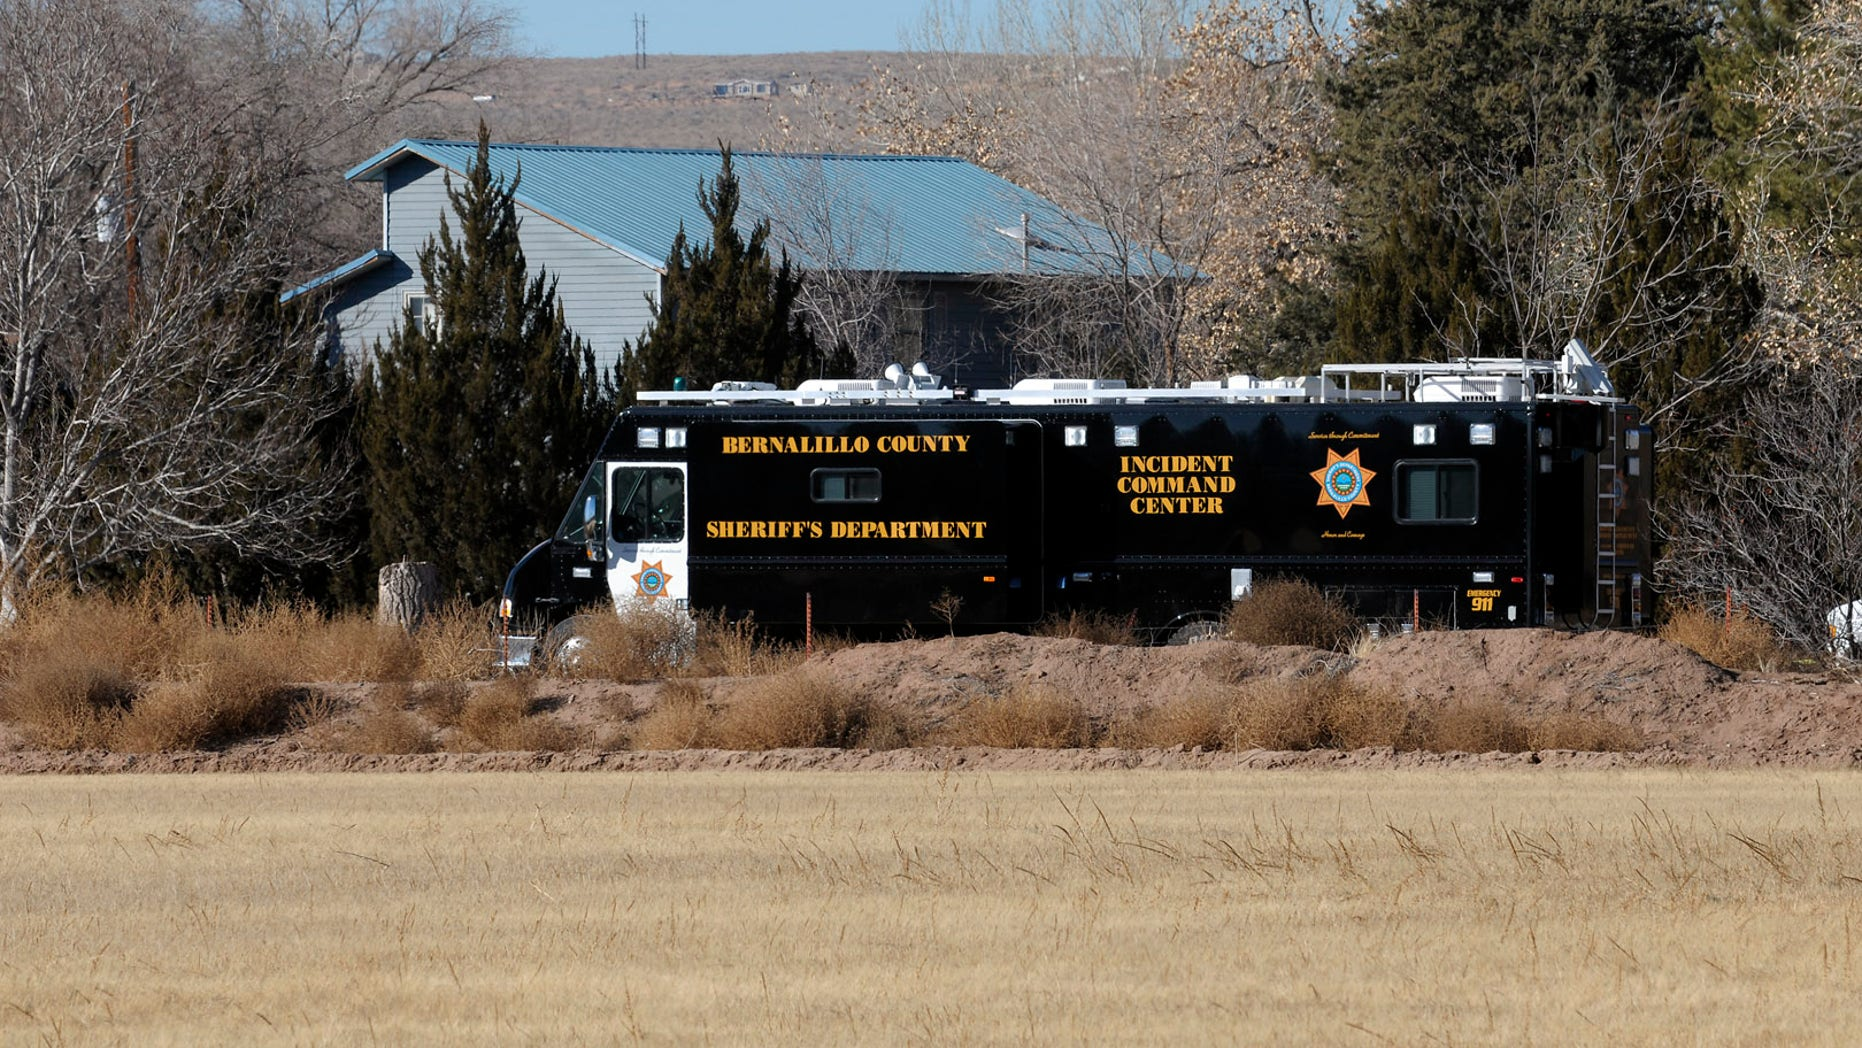 Jan. 20, 2013: BCSO deputies and crime scene personnel work the scene of a five person homicide on Long Lane SW, in Albuquerque, NM. Authorities said a teenage boy fatally shot two adults and three children at a home near Albuquerque.